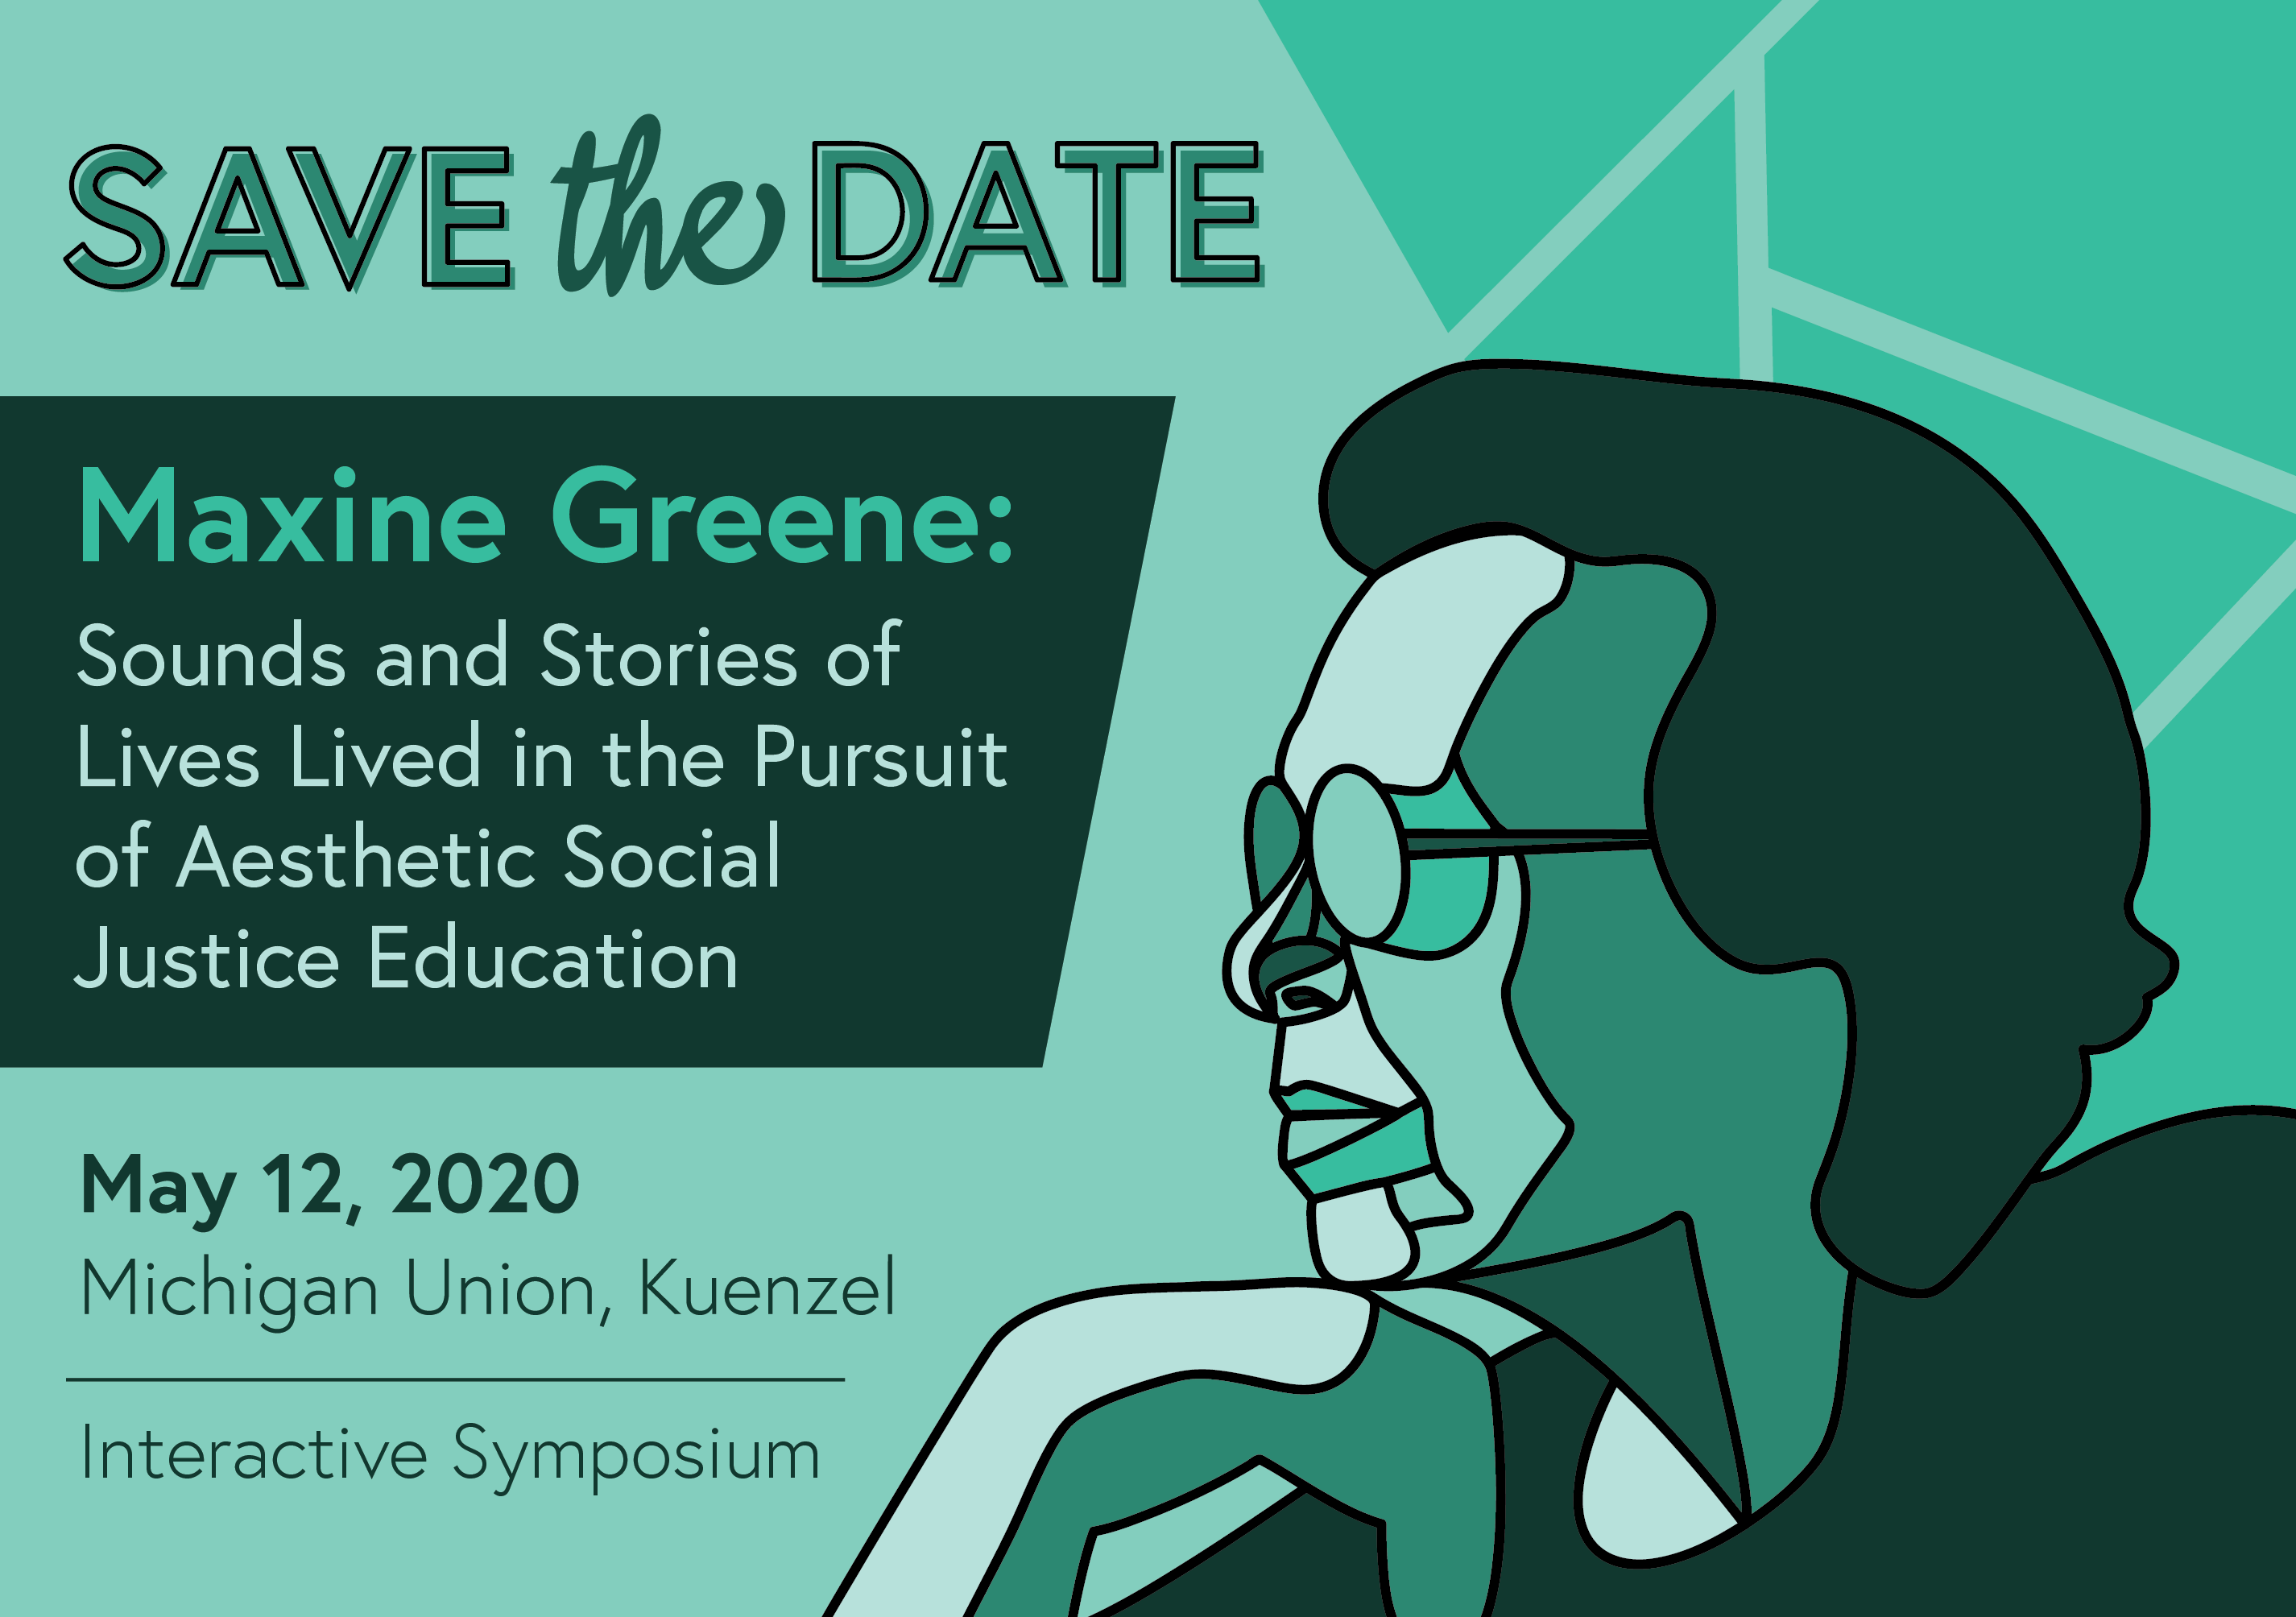 Save the Date, Maxine Greene: Sounds and Stories of Lives Lived in the Pursuit of Aesthetic Social Justice Education, May 12, 2020, Michigan Union, Kuenzel, Interactive Symposium